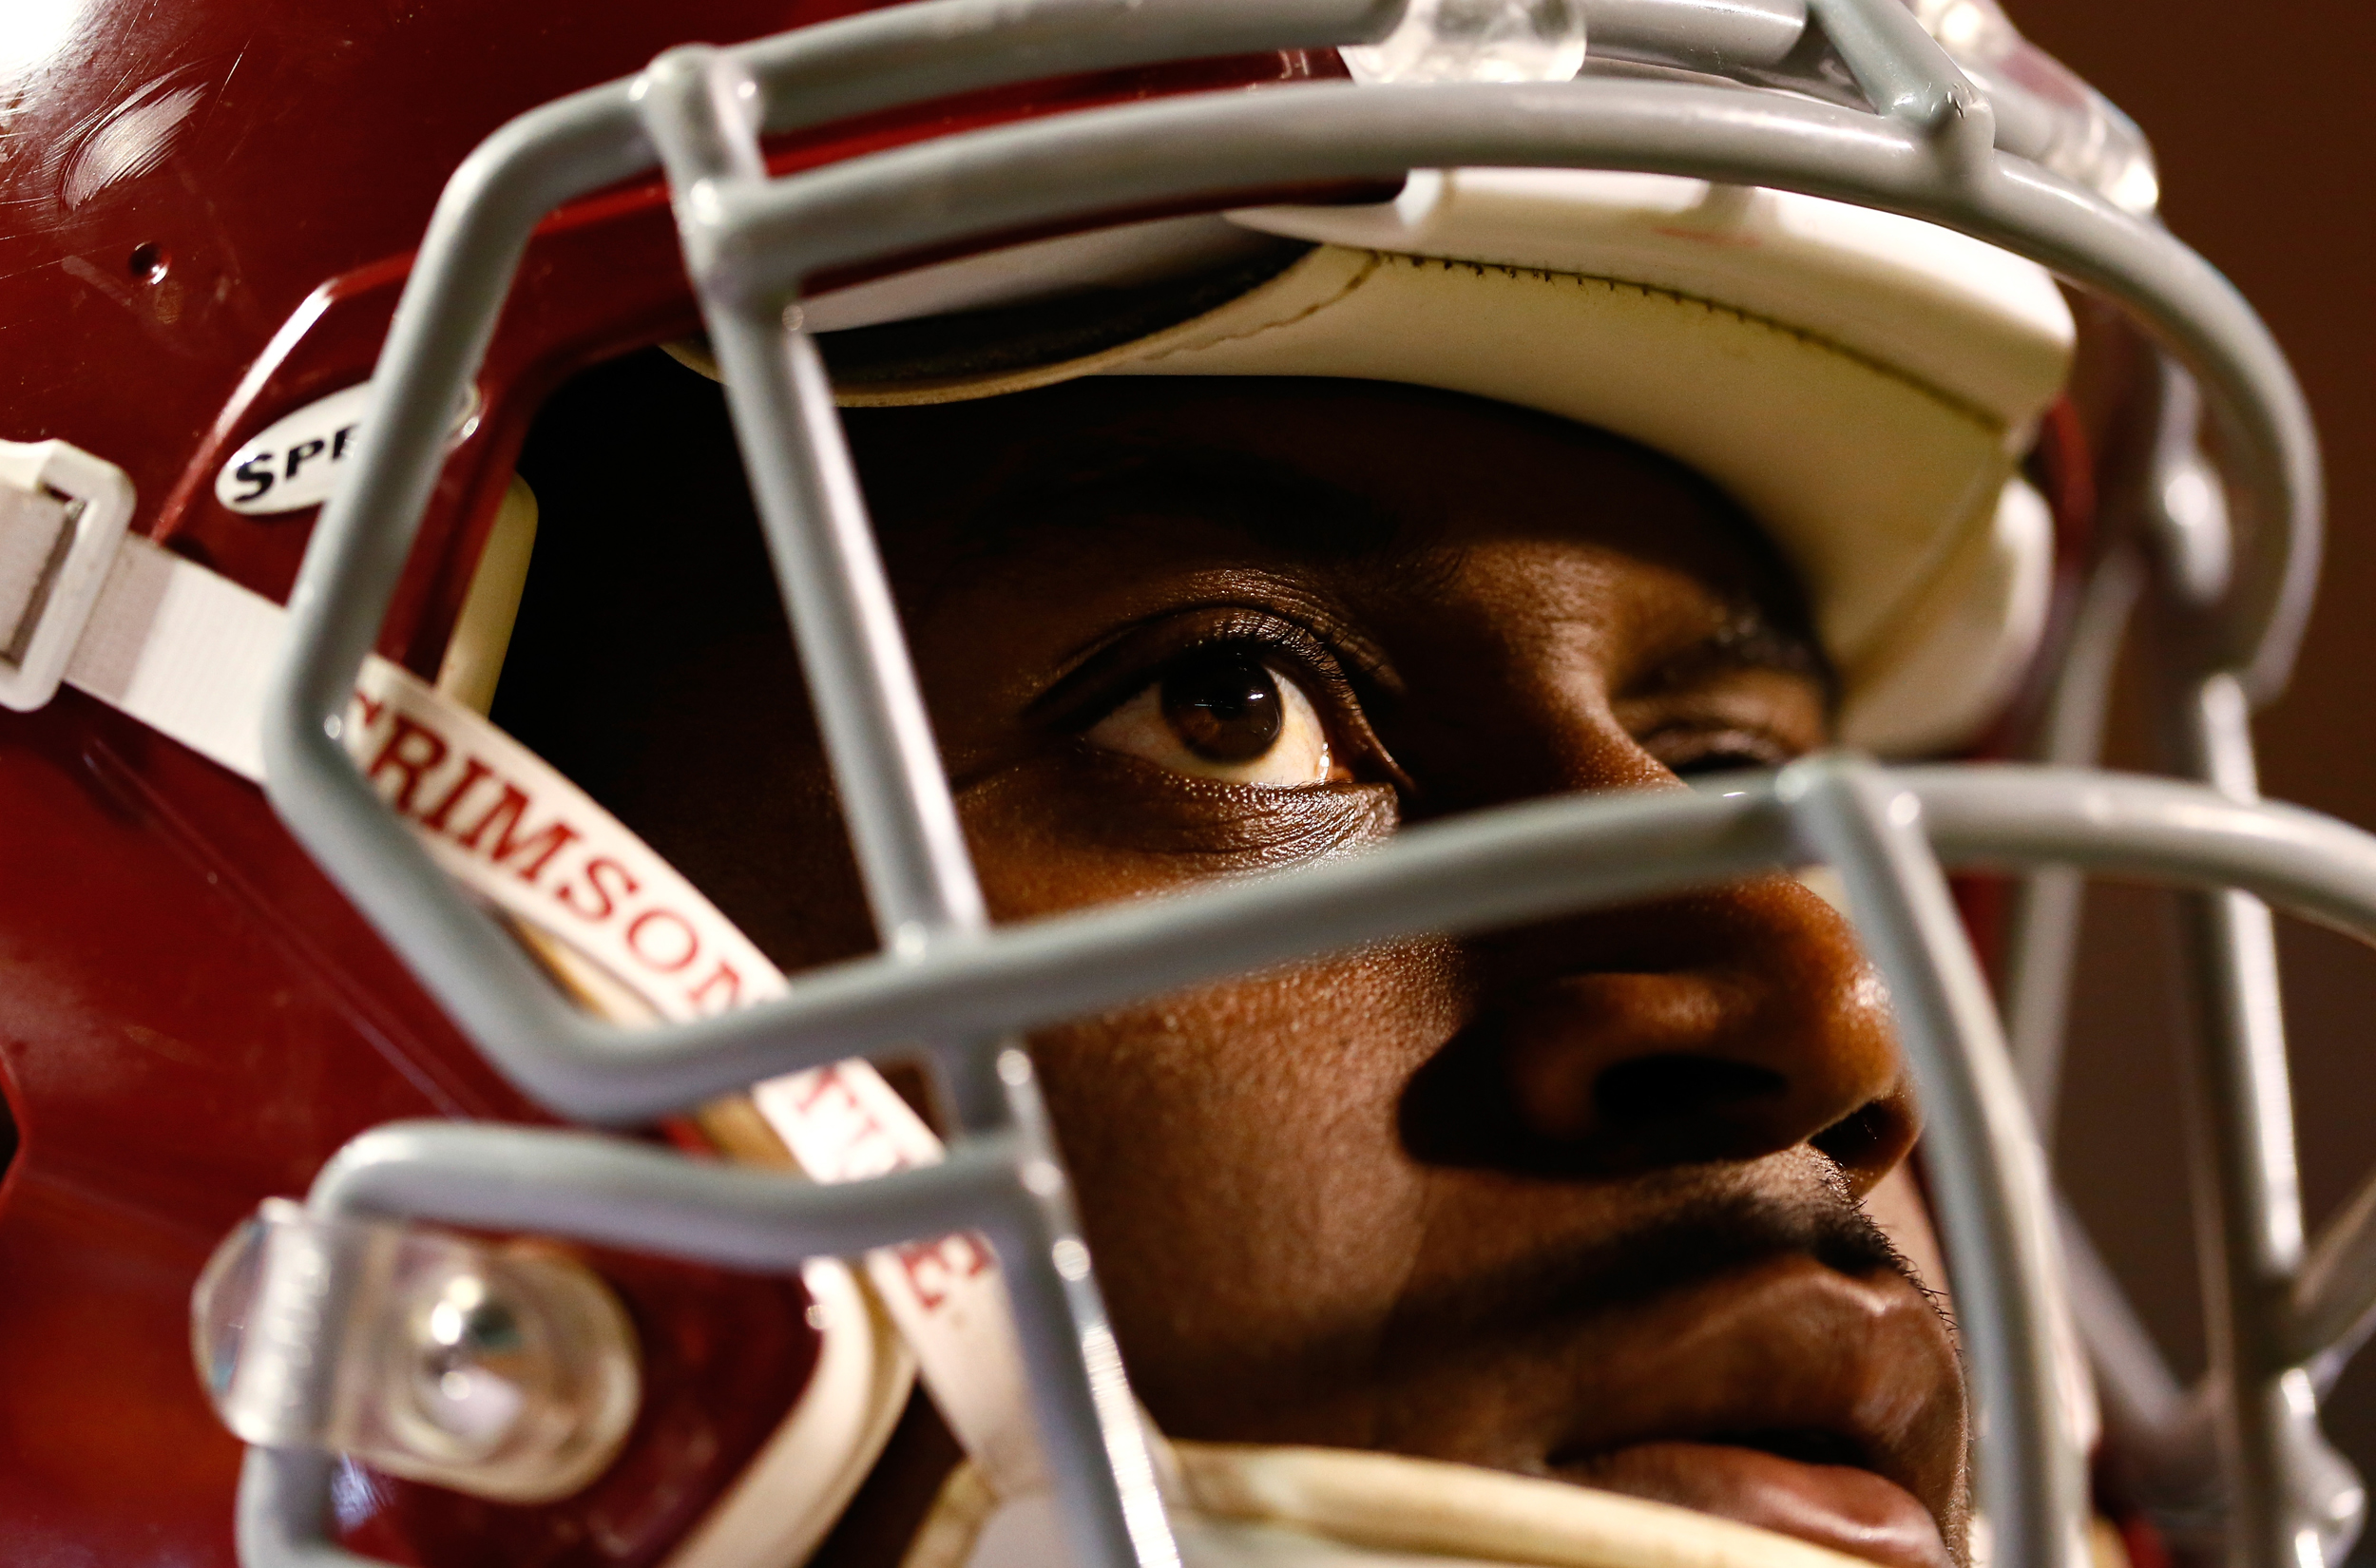 Blake Sims #6 of the Alabama Crimson Tide waits for a kickoff by the Tennessee Volunteers at Neyland Stadium on October 25, 2014 in Knoxville, Tennessee.